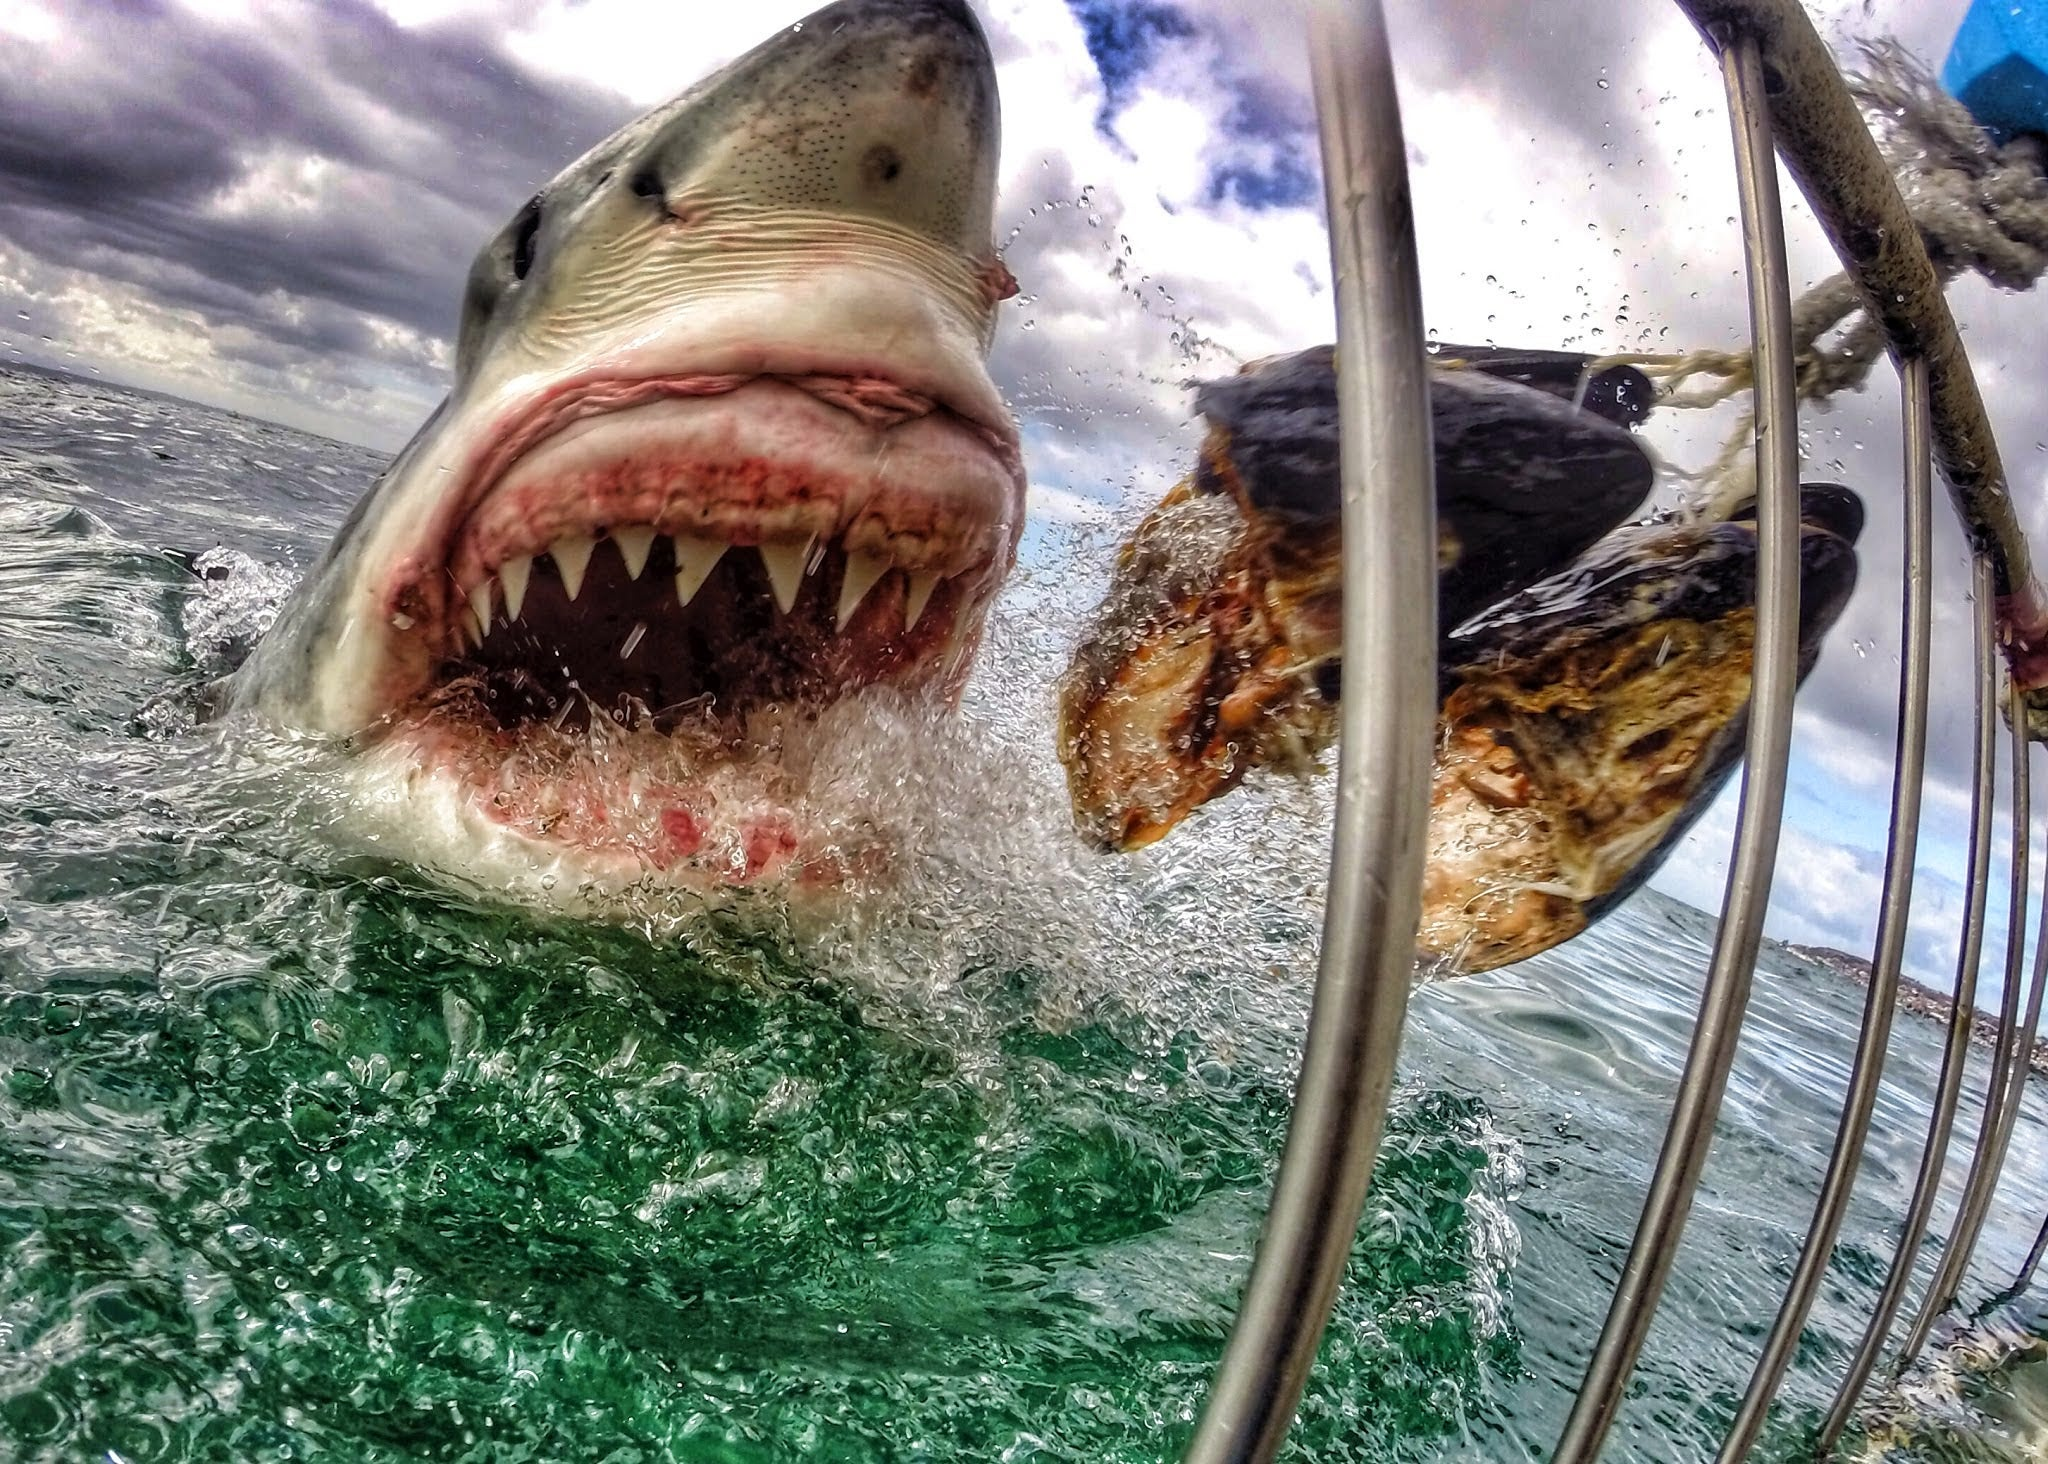 Insane close-up photo of a white shark will give me nightmares forever